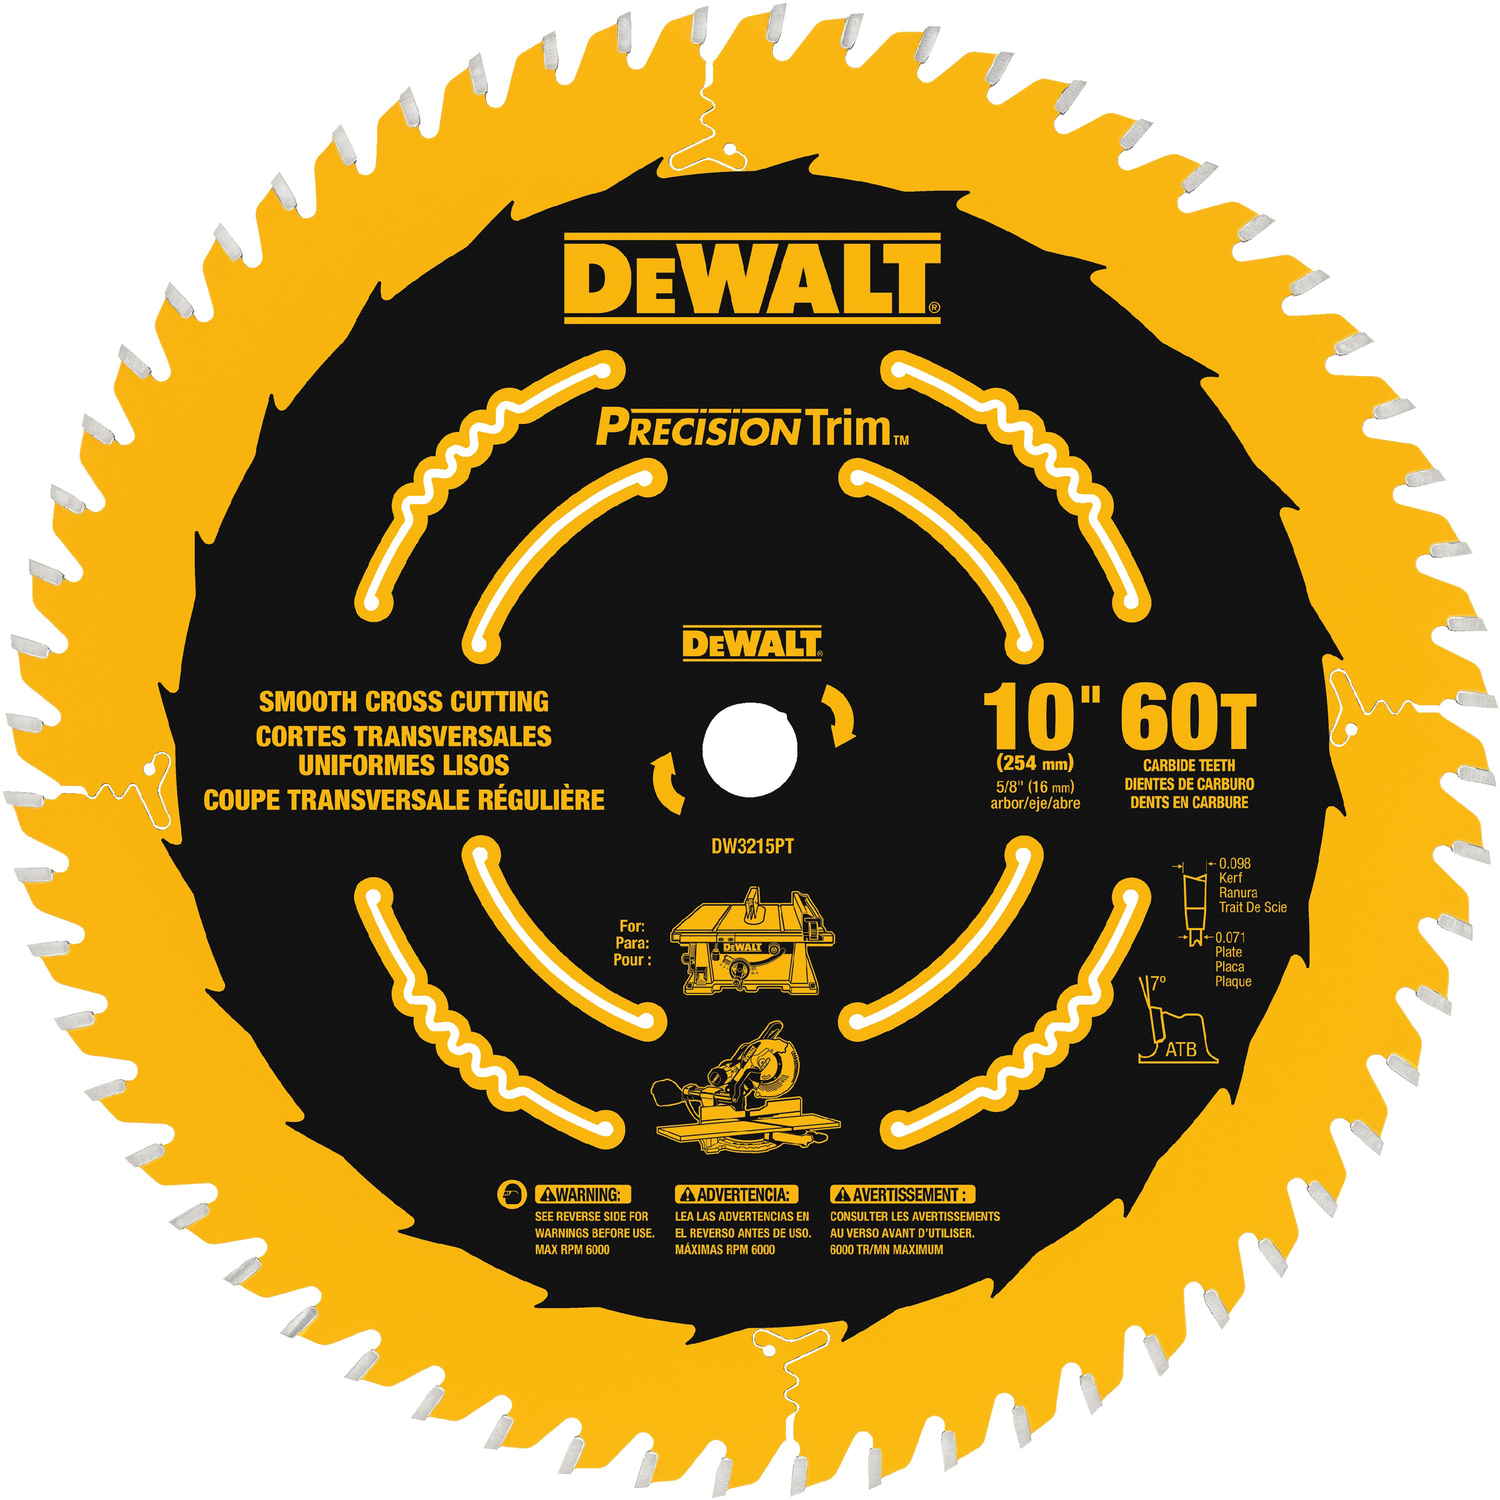 DeWalt  10 in.  Carbide Tipped  Circular Saw Blade  0.071 in.  5/8 in.  1 pk 60 teeth Precision Trim